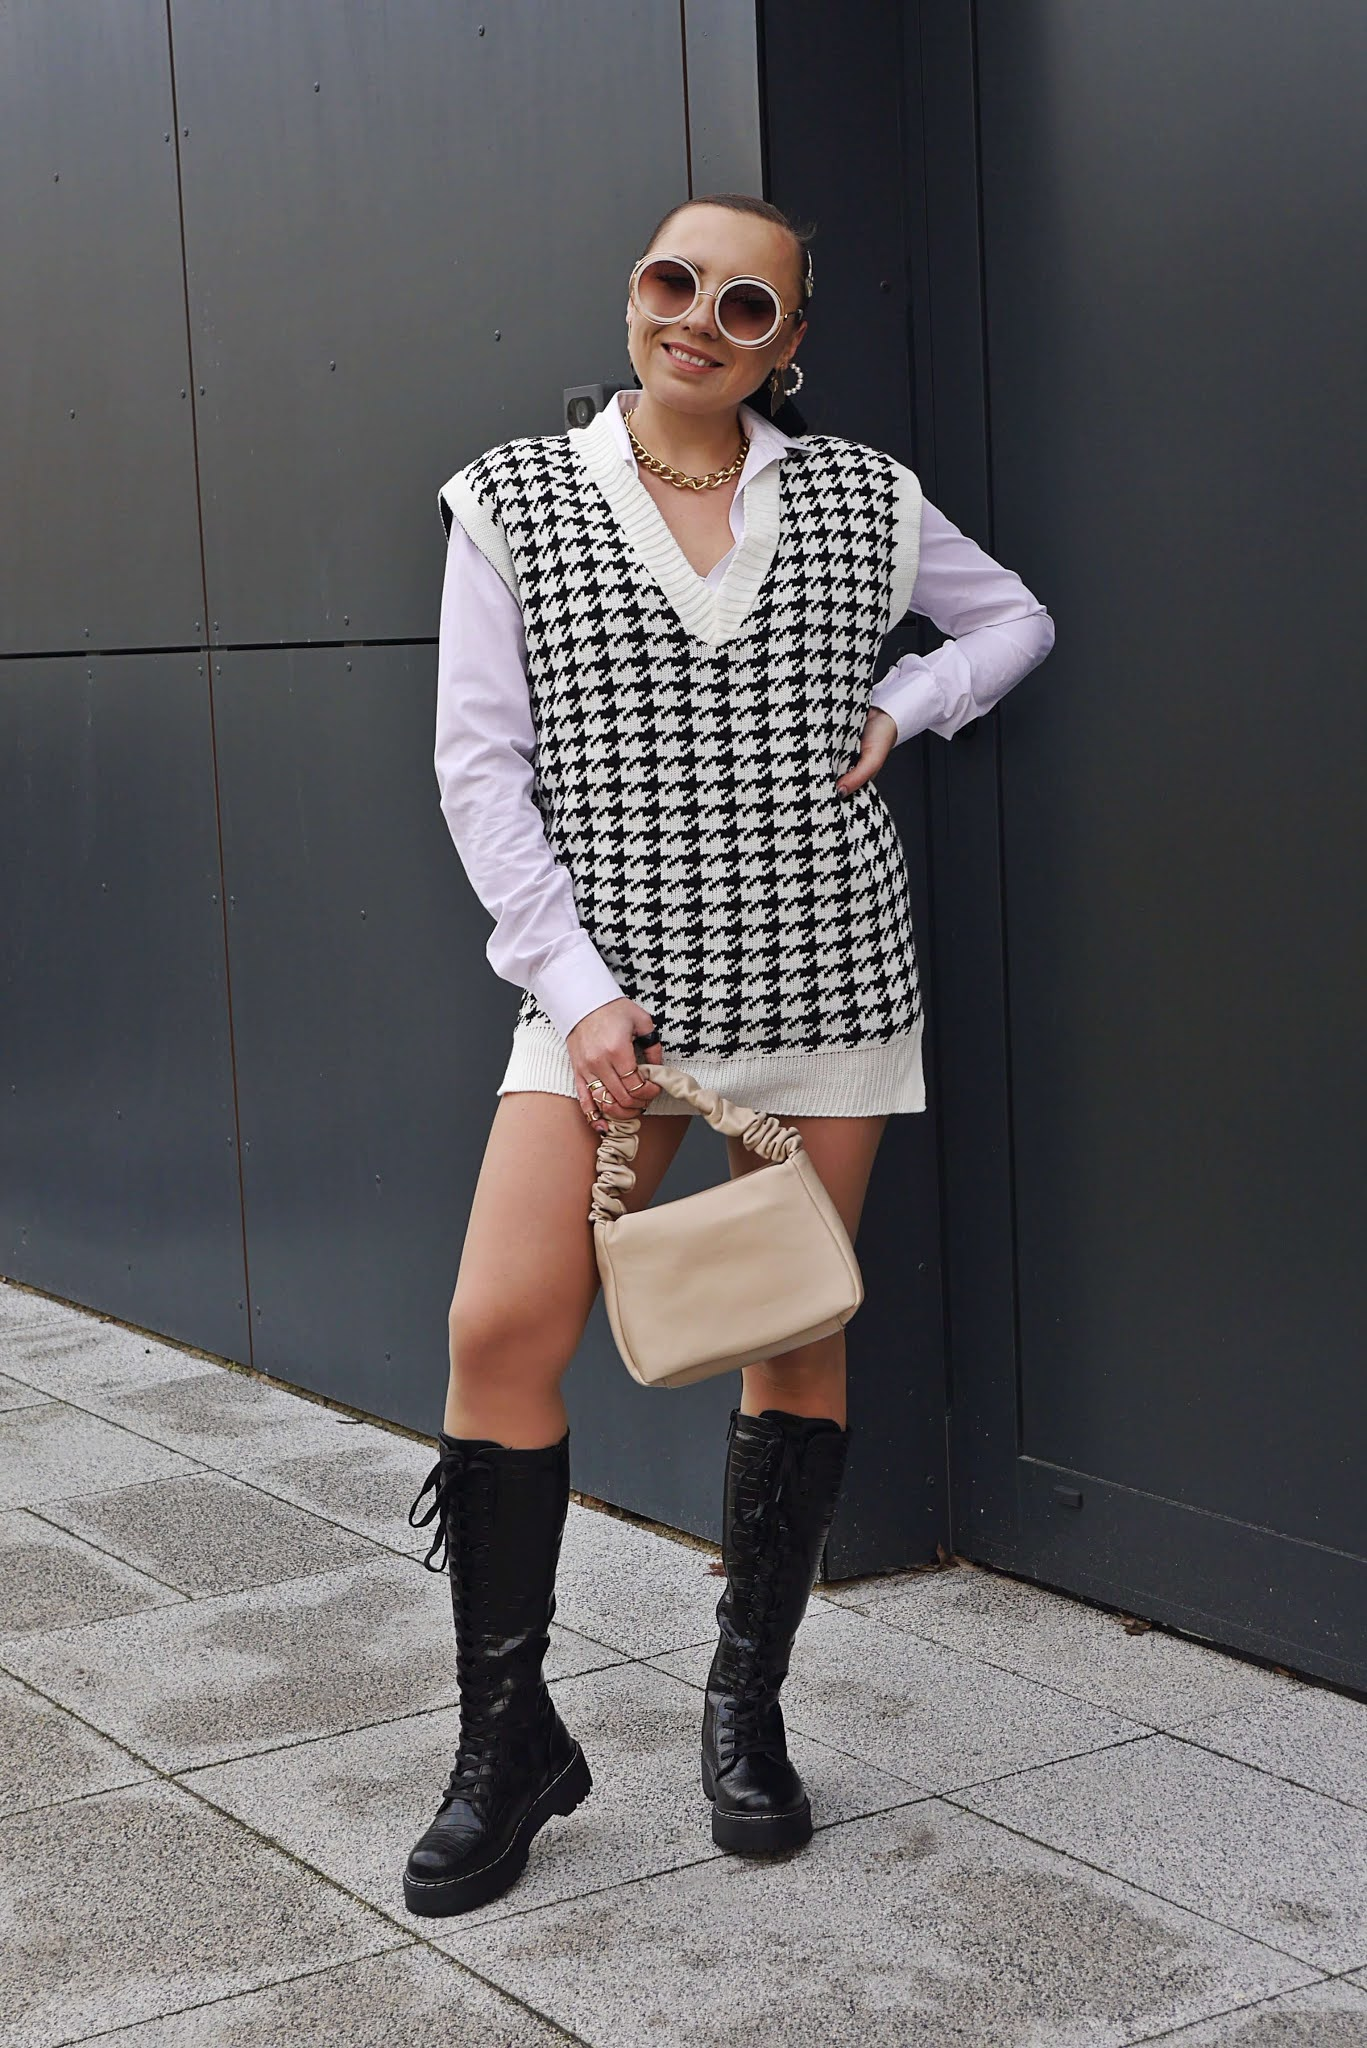 fashion blogger karyn pulawy biker combat high boots ootd outfit look black white sweater vest baige bag sunglasses